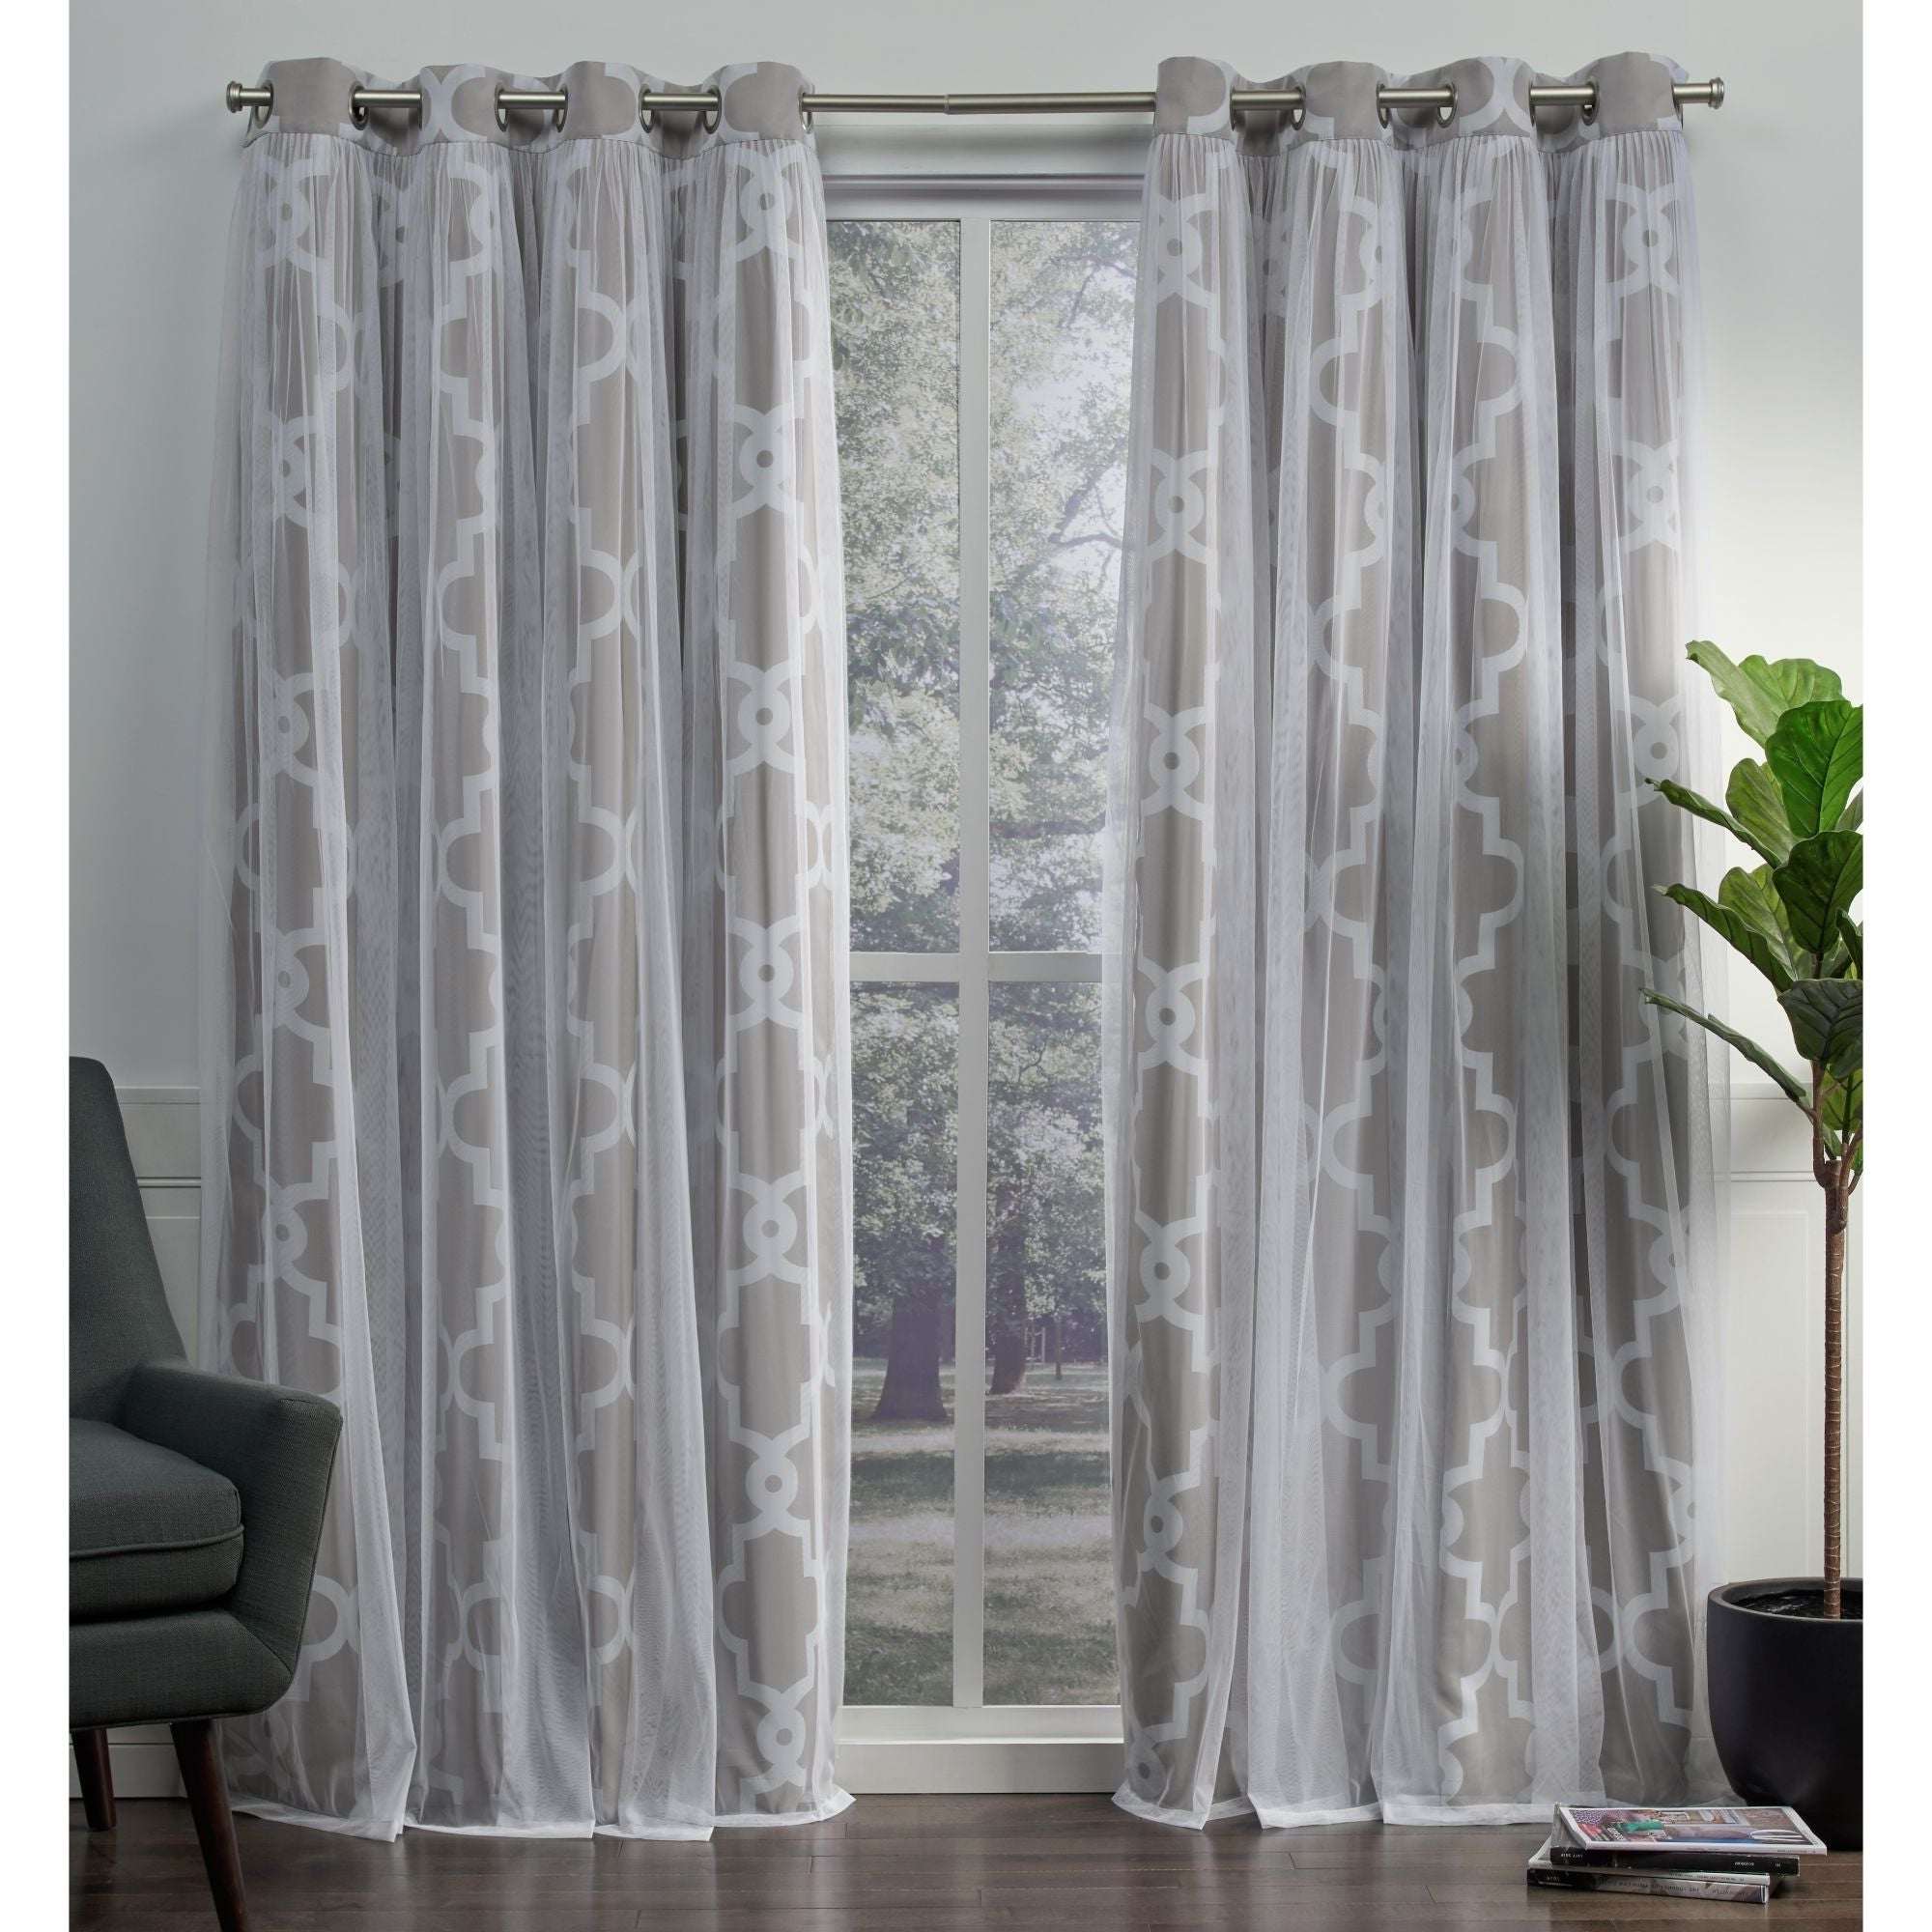 Newest Ati Home Alegra Thermal Woven Blackout Grommet Top Curtain Panel Pair Inside Thermal Woven Blackout Grommet Top Curtain Panel Pairs (View 3 of 20)